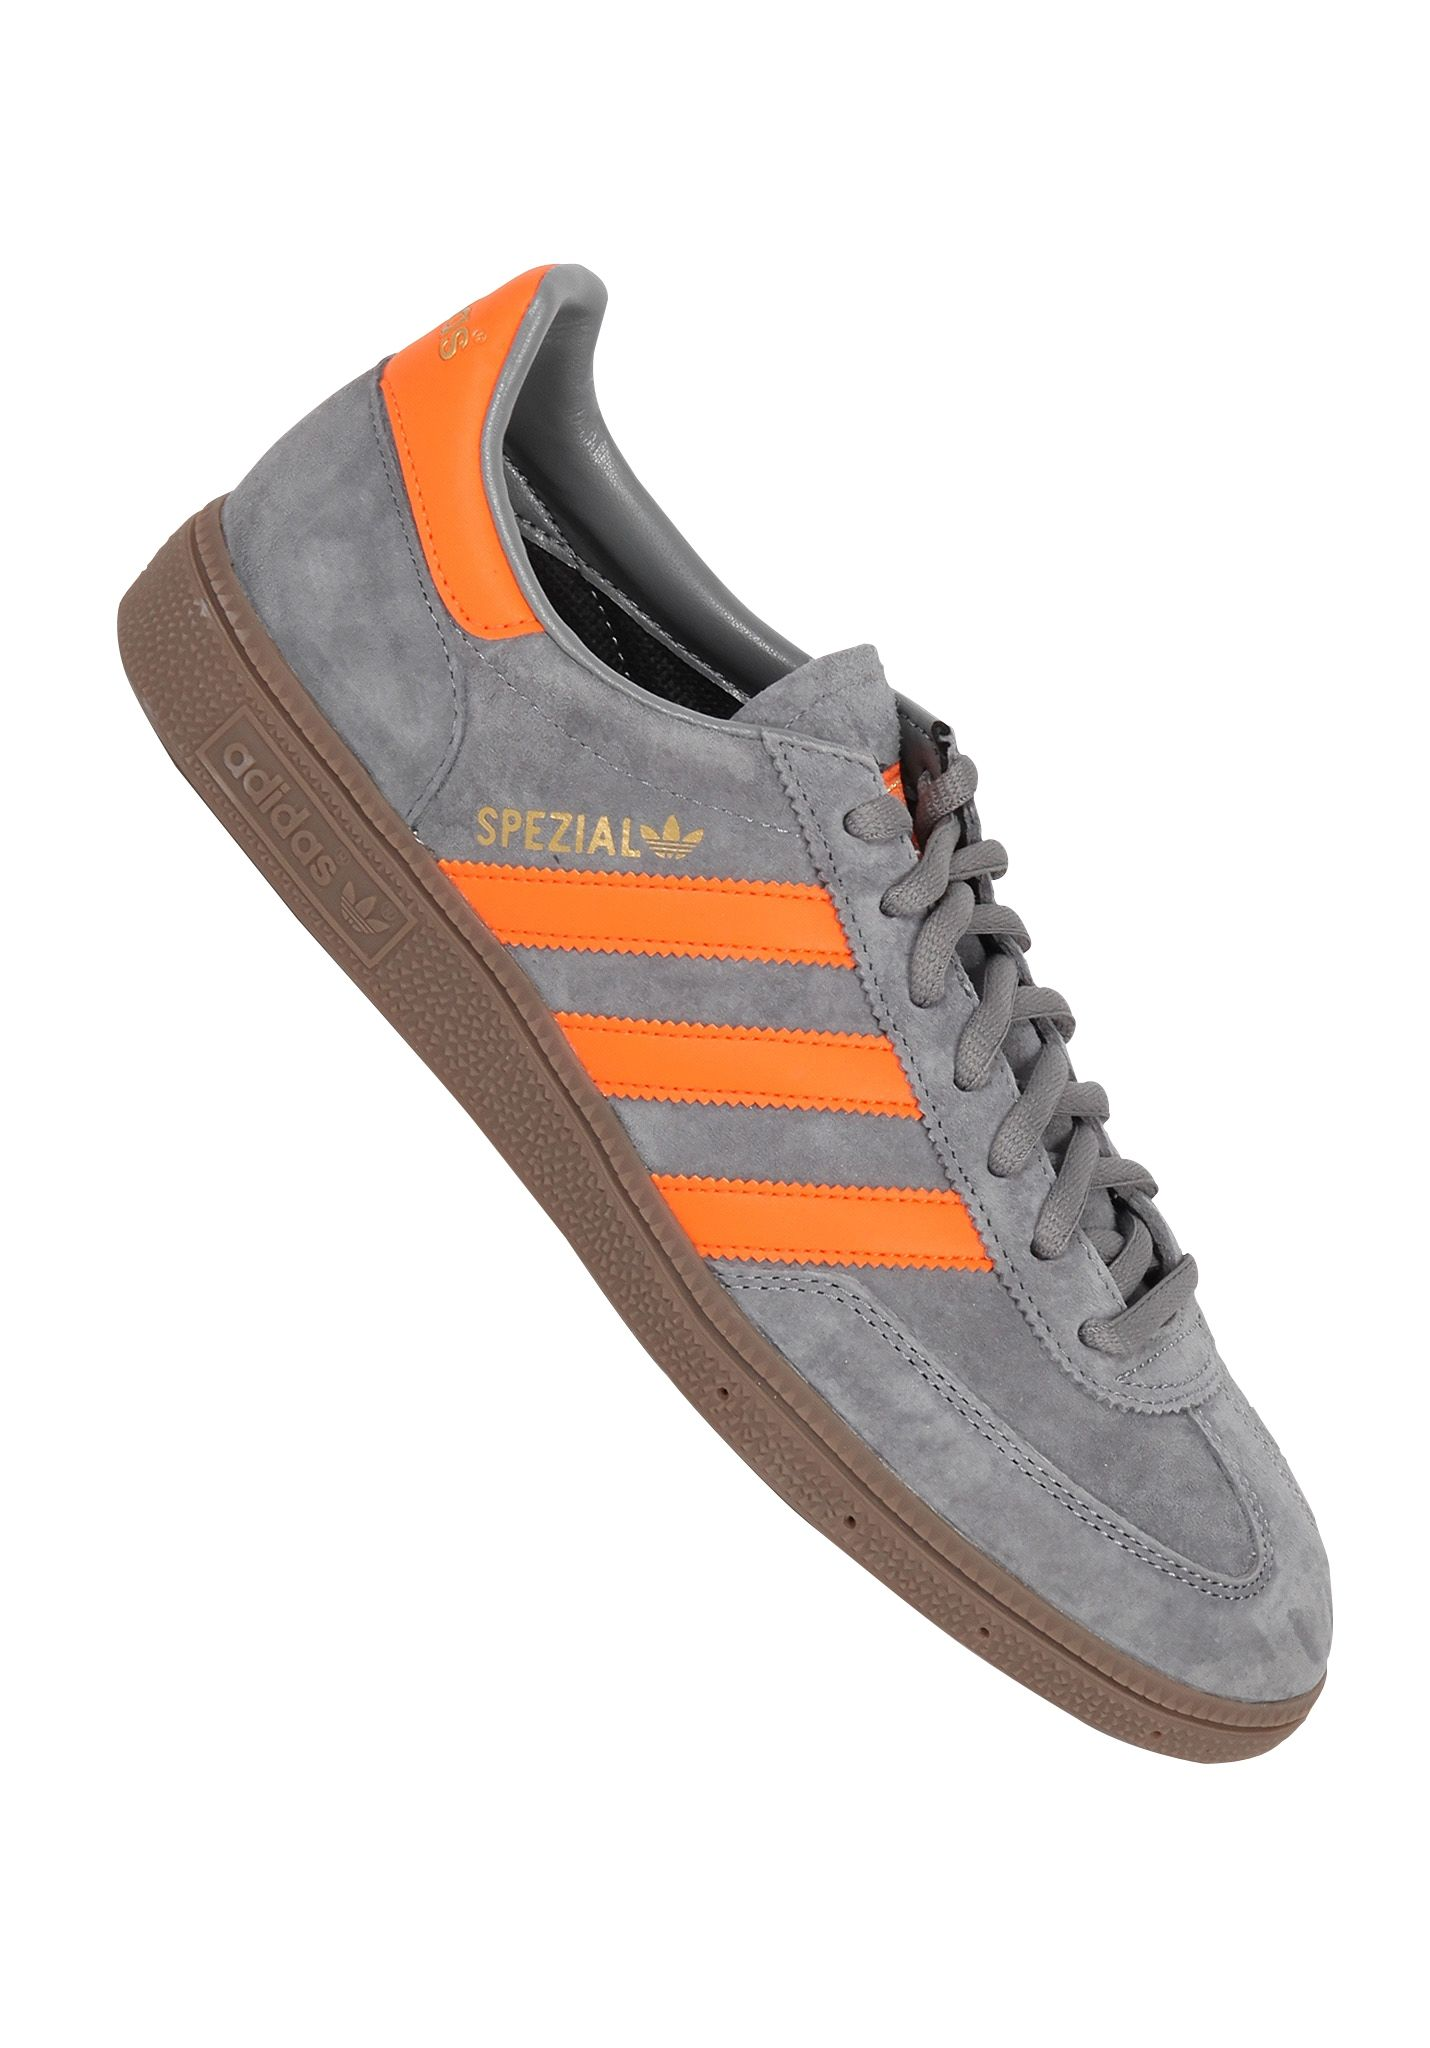 adidas spezial grey orange 17376c9df3af